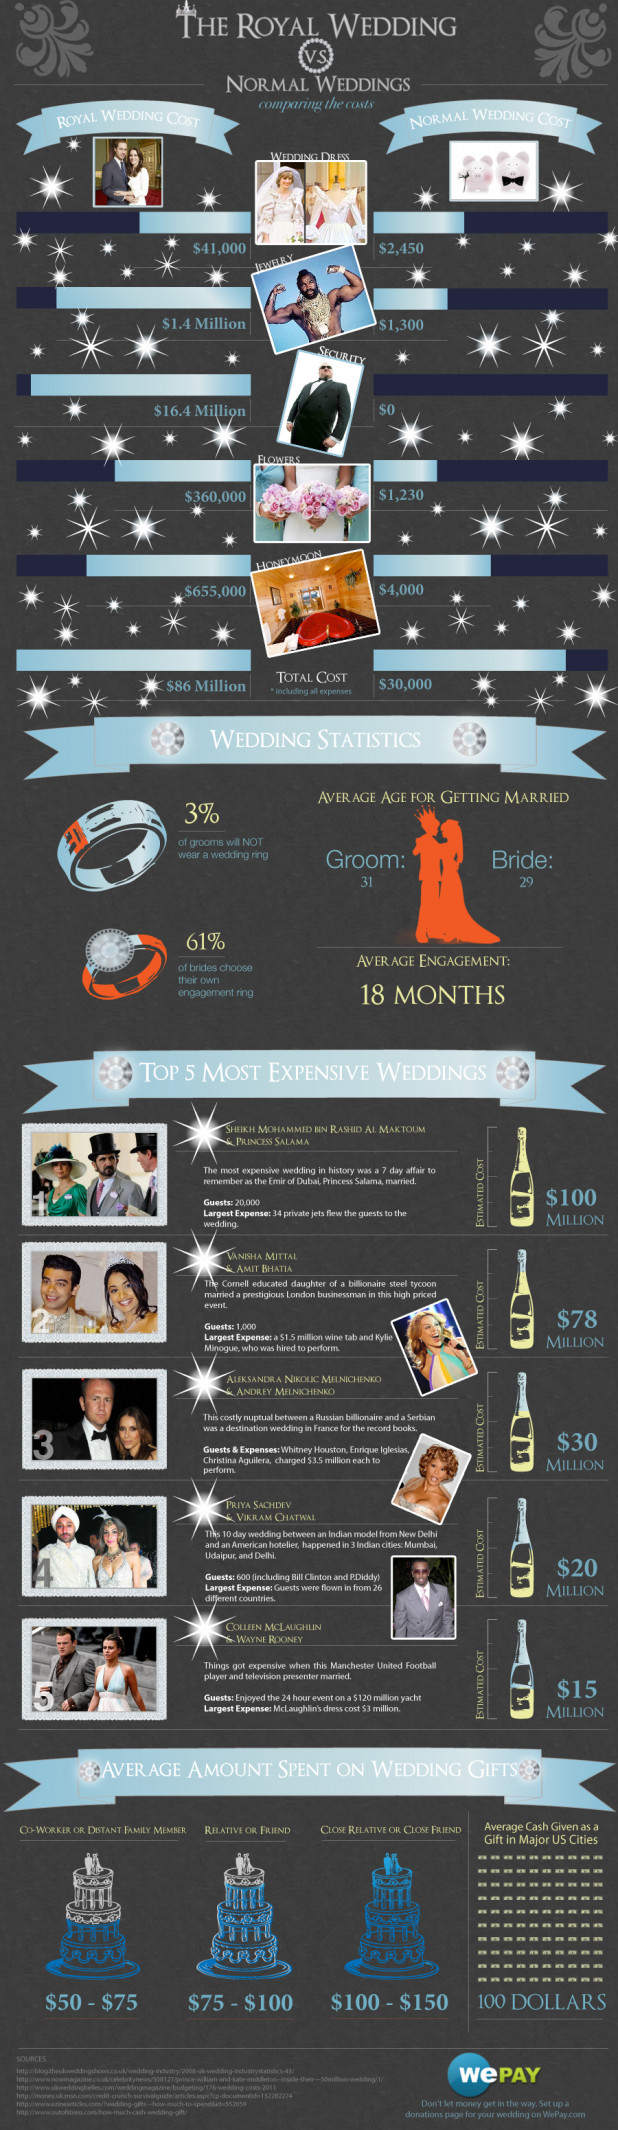 Cost of The Royal Wedding Vs. Your Wedding